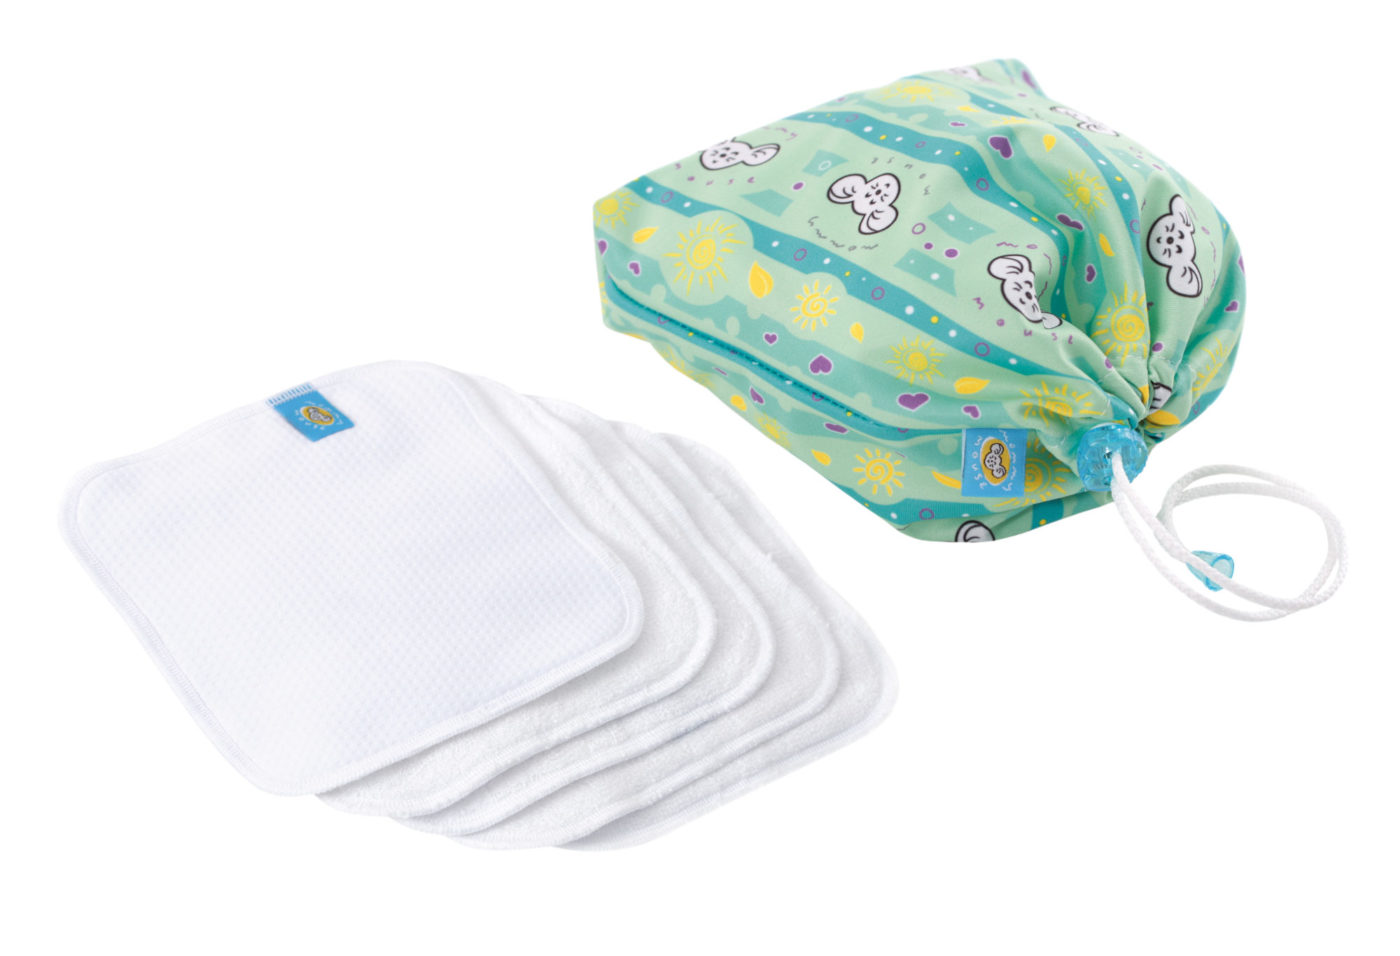 Reusable Wipe Pouch MOJE SŁONECZKO +  5pcs Reusable Wipes (COMBINED SET)